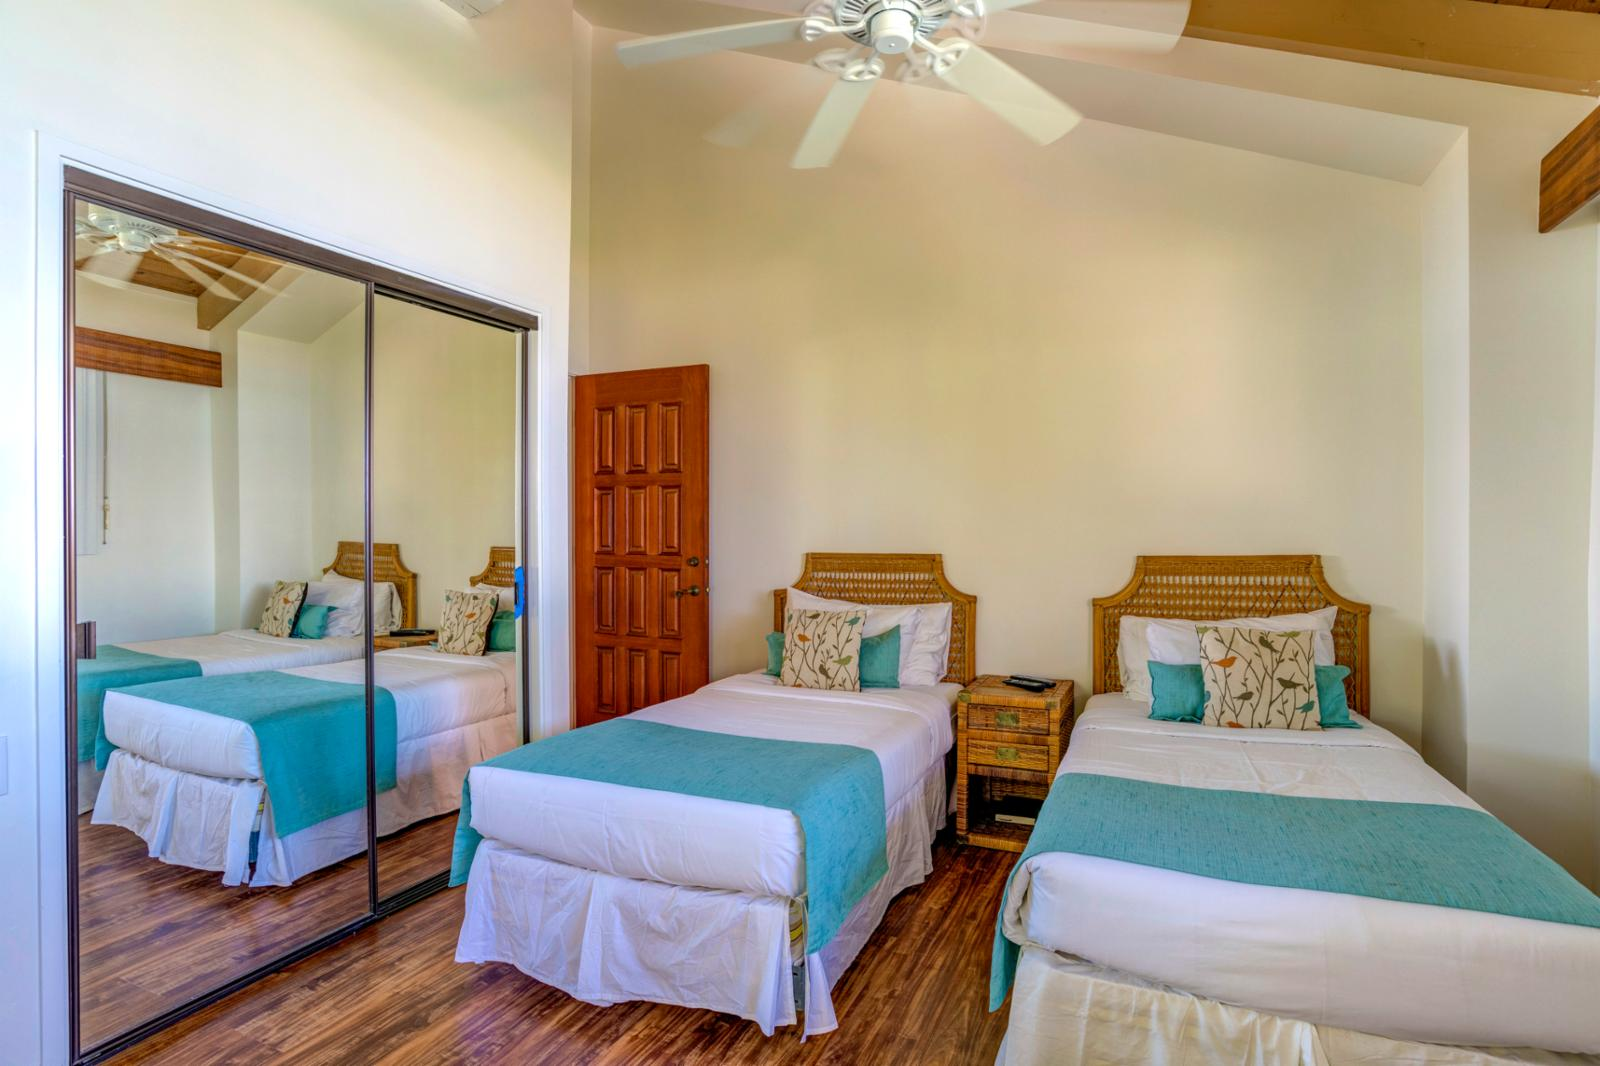 Comfortable twin bed configuration and equipped with ceiling fans.